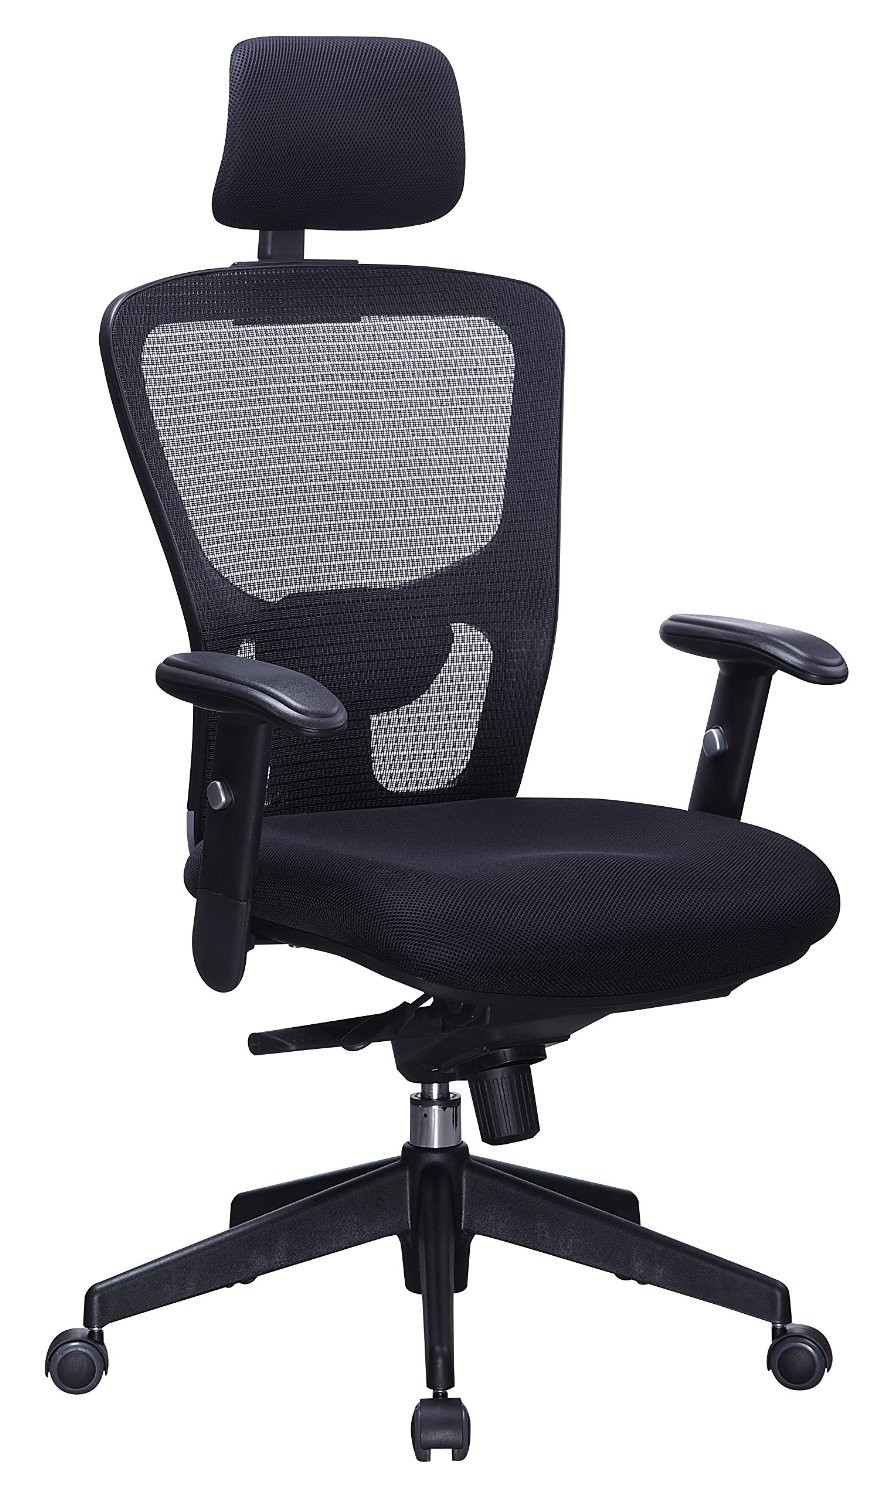 Best ideas about Office Chair Lumbar Support . Save or Pin 20 Ideas of puter Chairs With Lumbar Support Now.